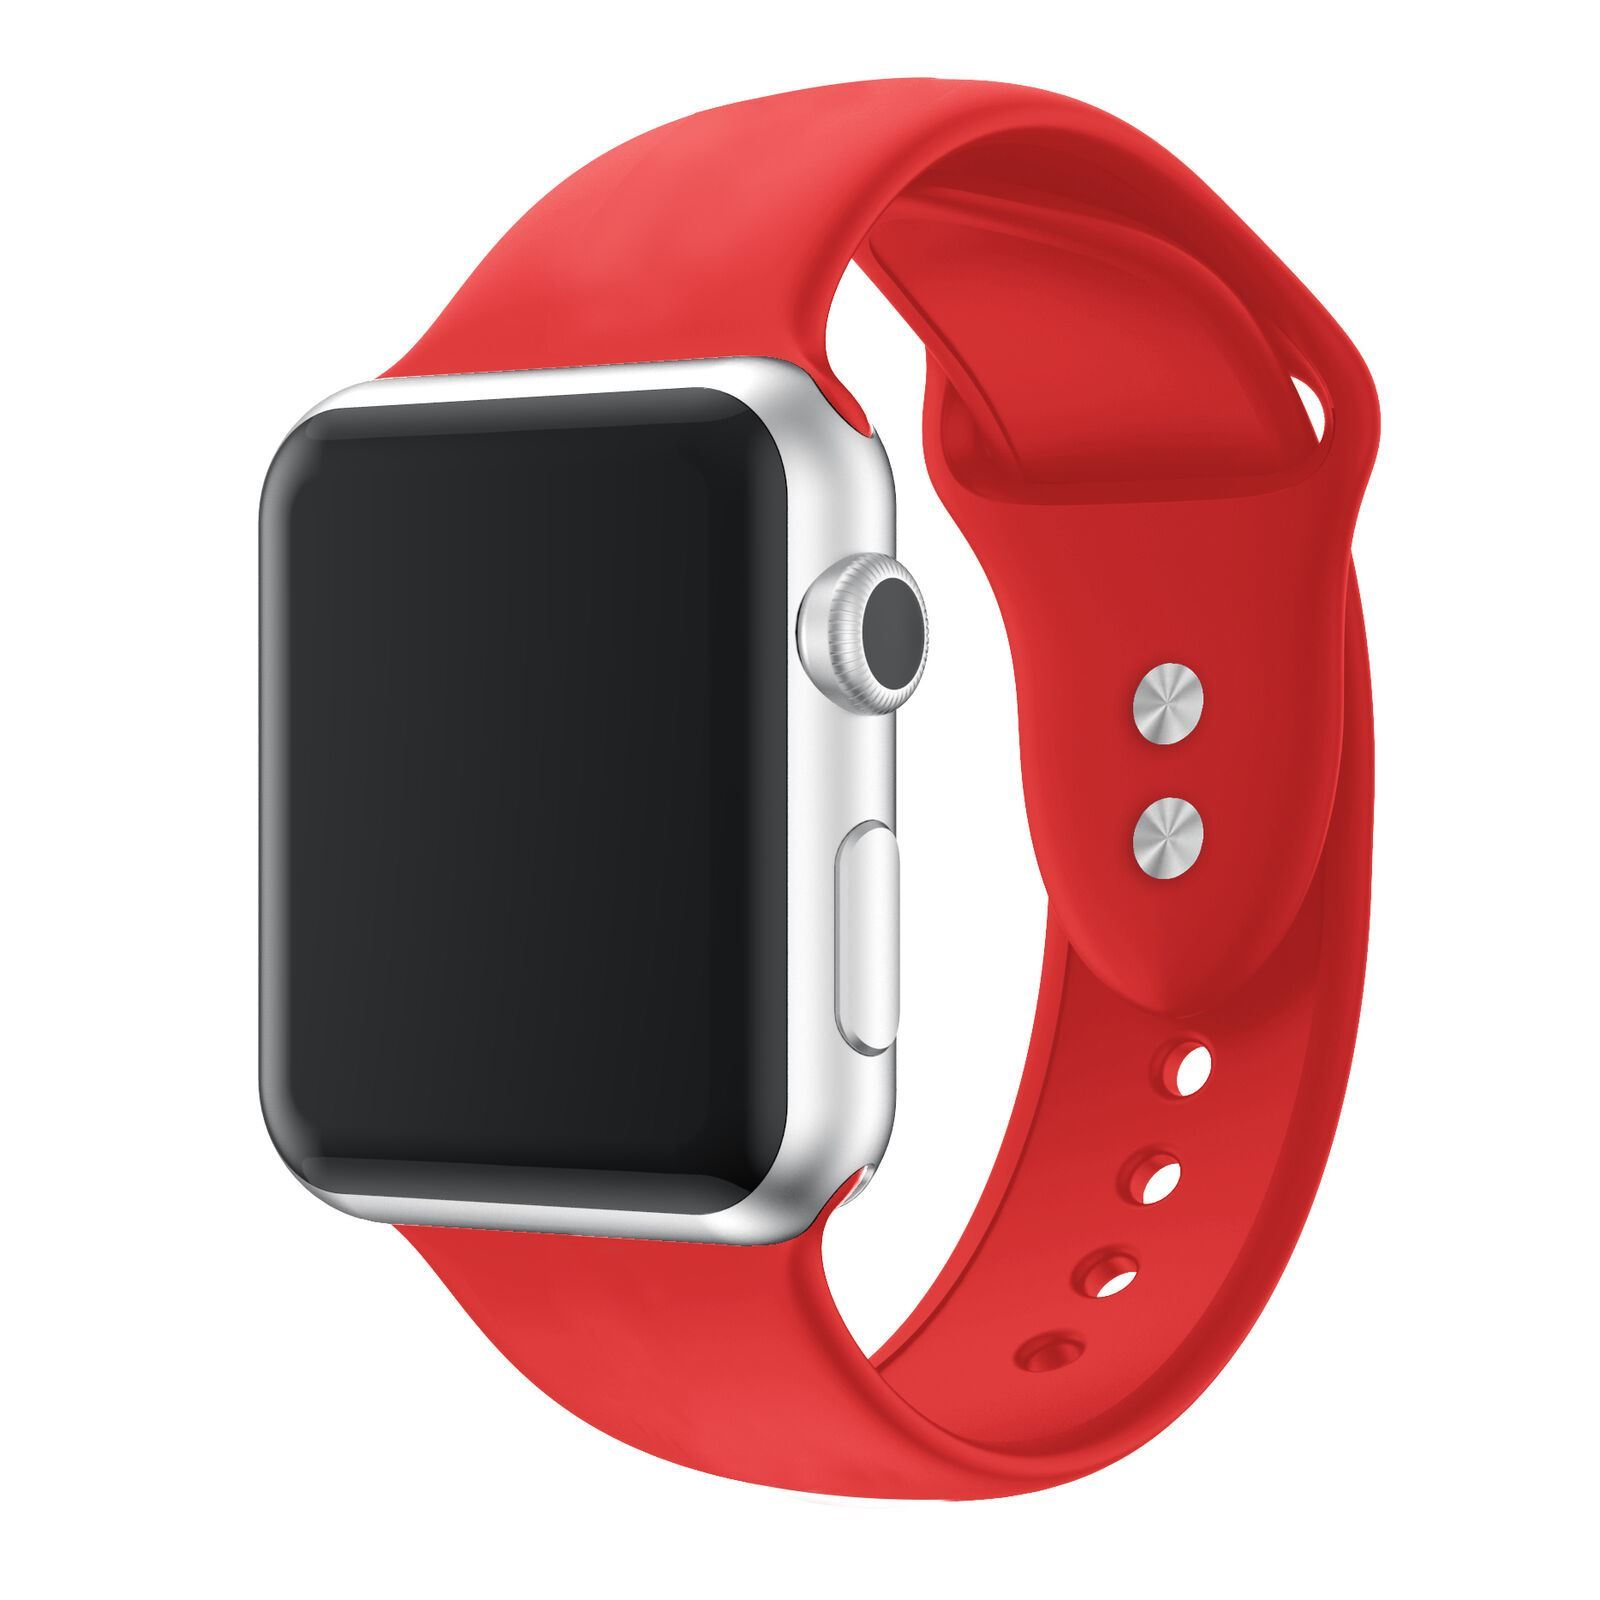 Strap-For-Apple-Watch-Silicone-Comfortable-Durable-Waterproof-Band thumbnail 31